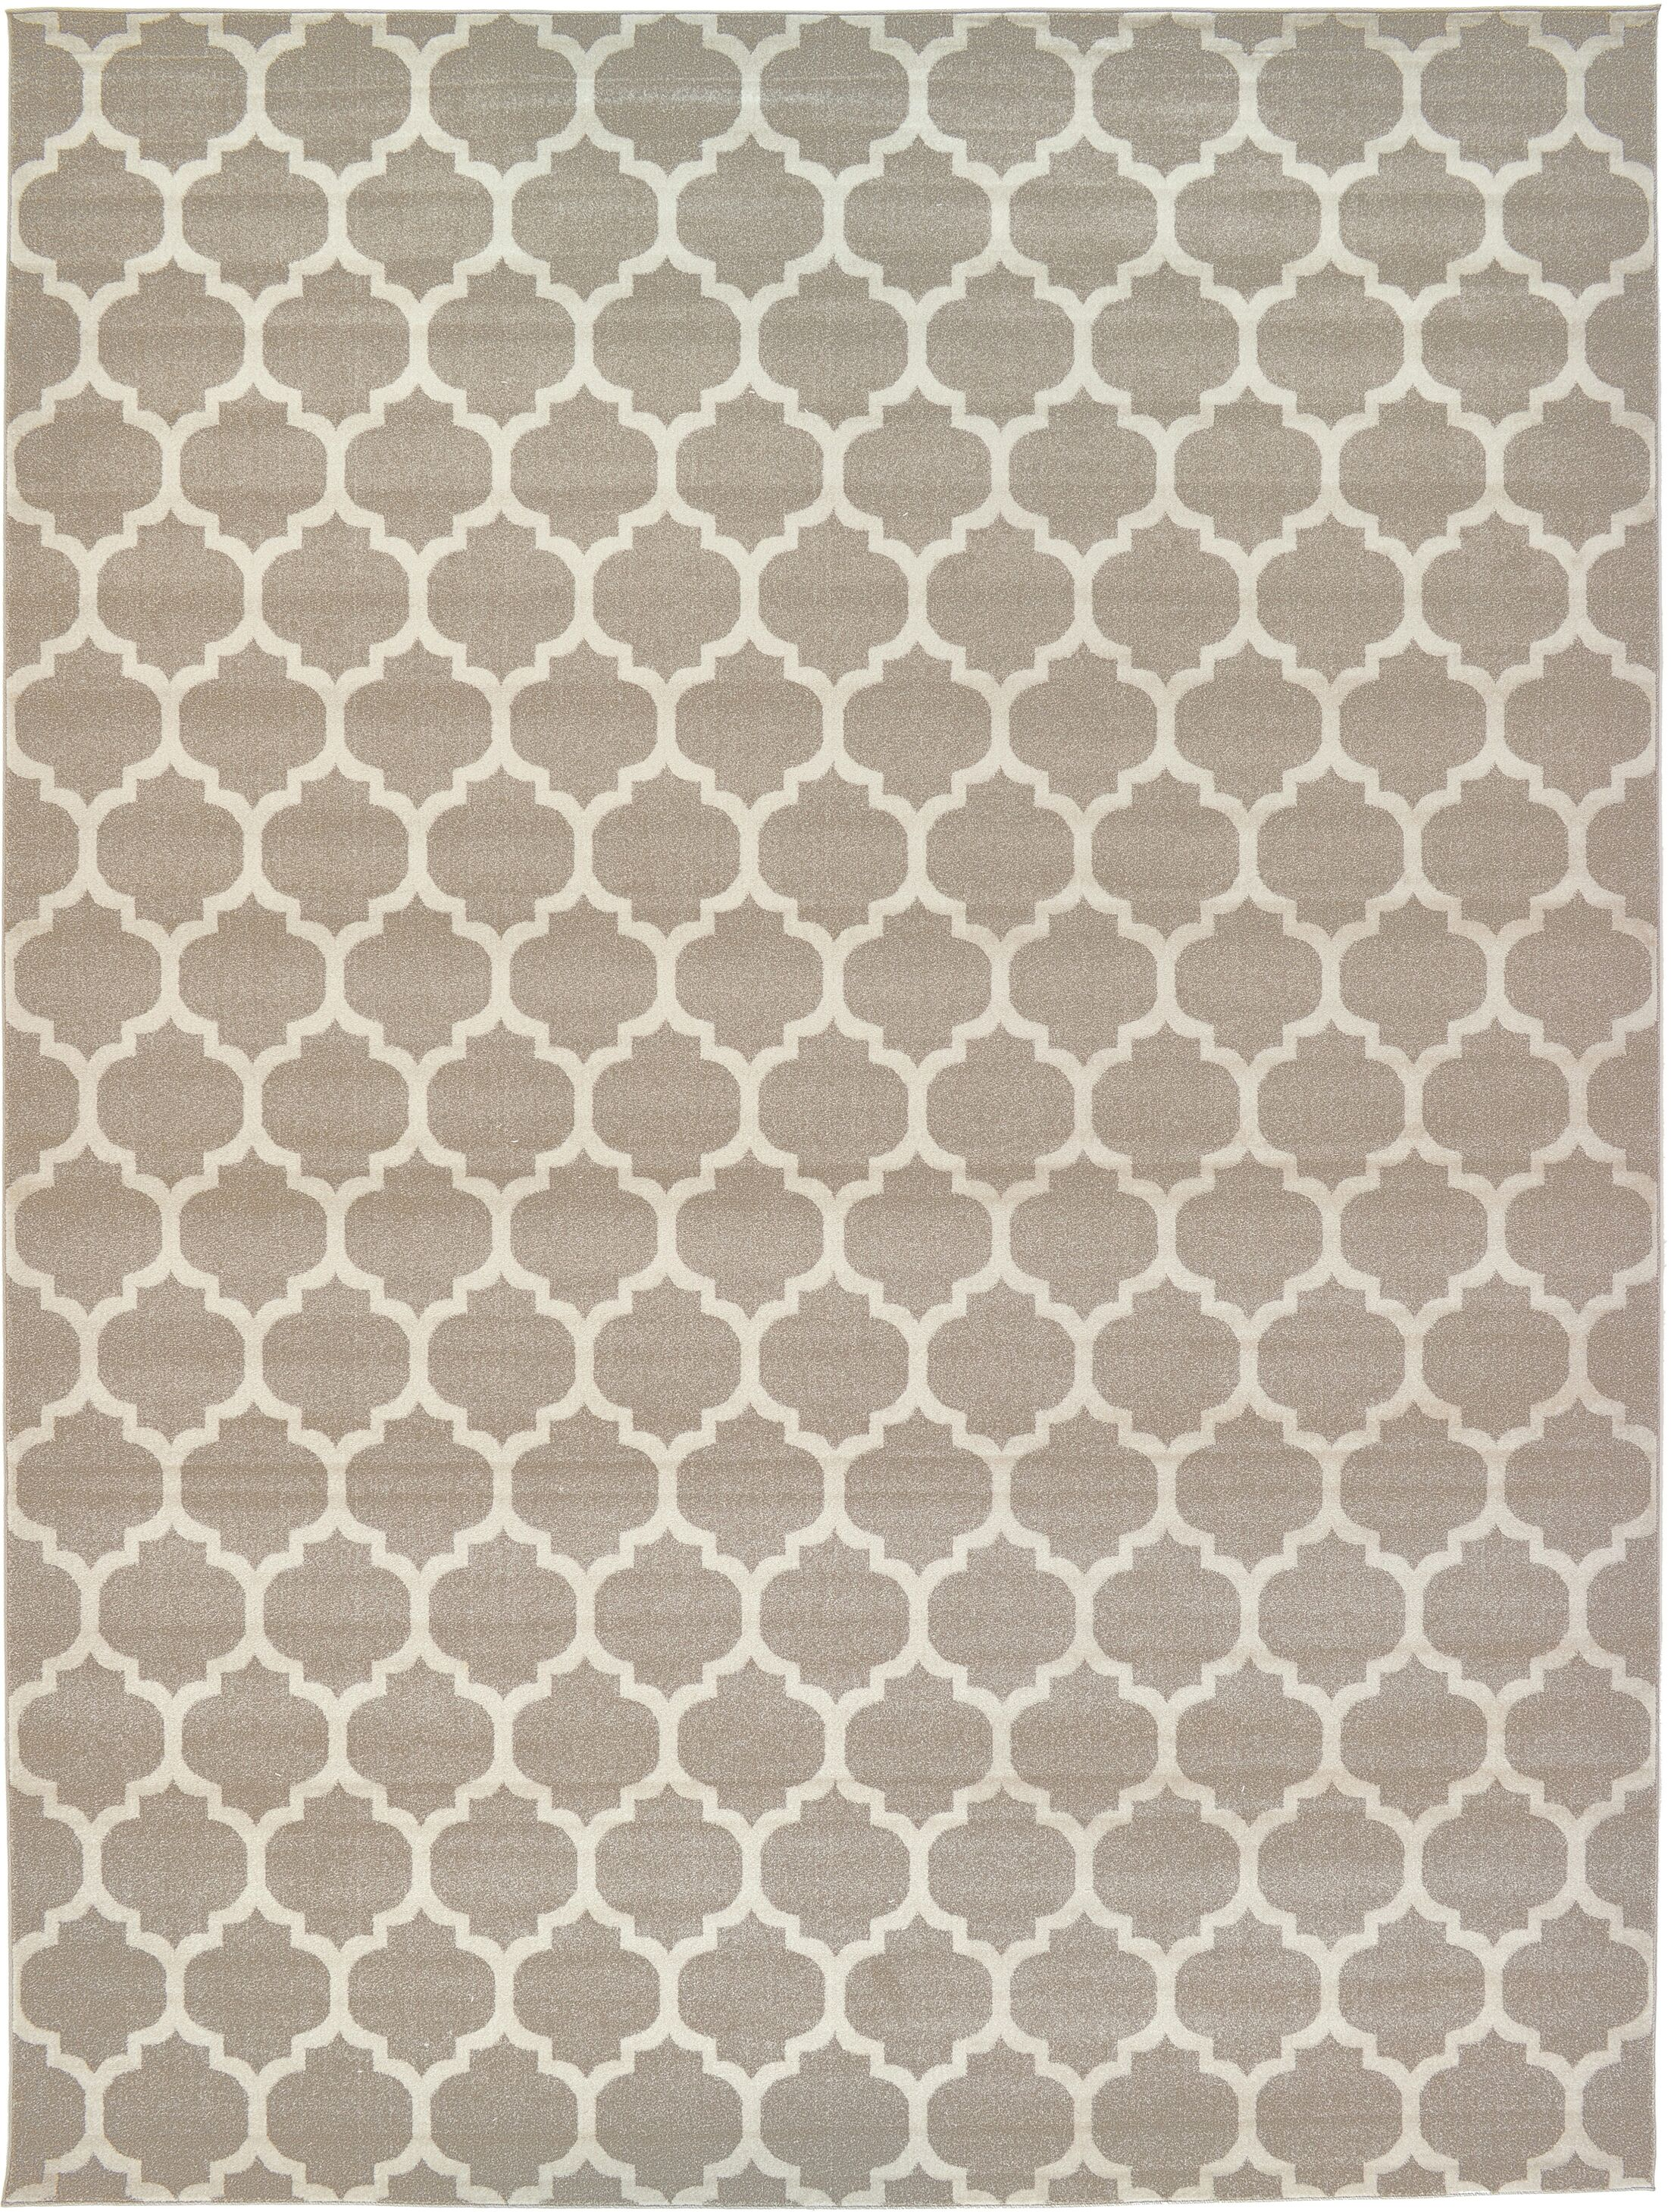 Moore Tan Area Rug Rug Size: Rectangle 12'2